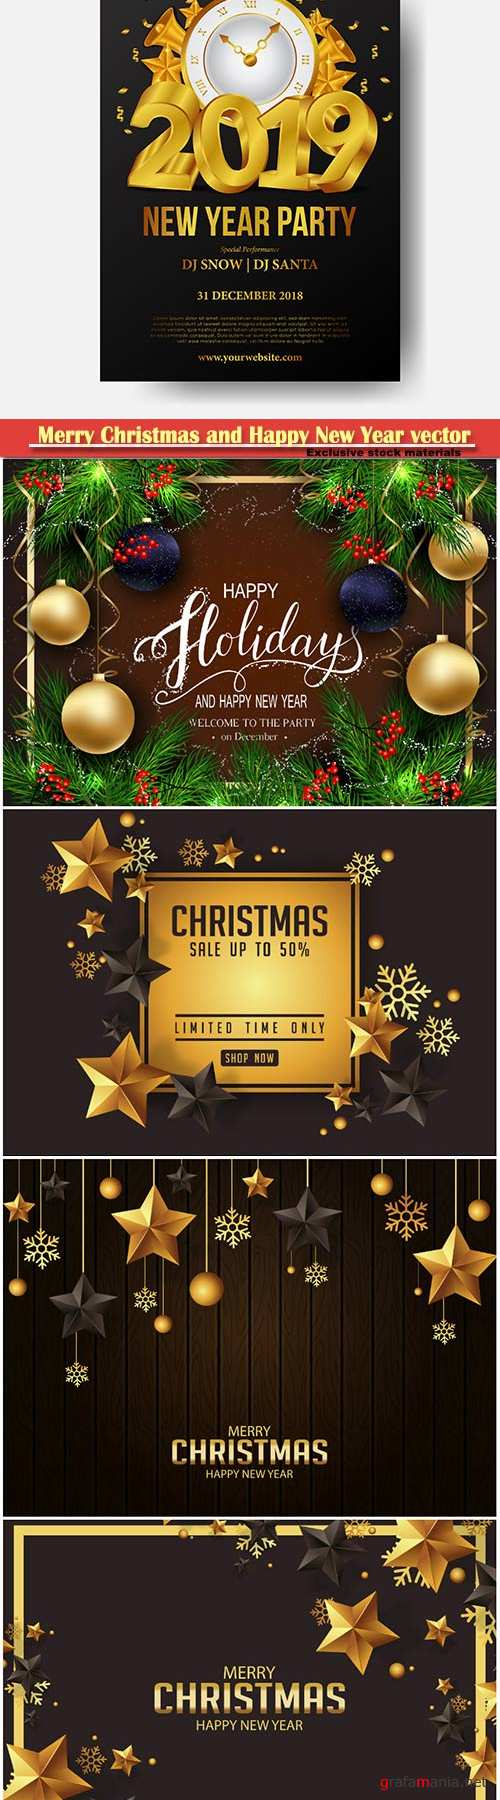 2019 Merry Christmas and Happy New Year vector design # 7